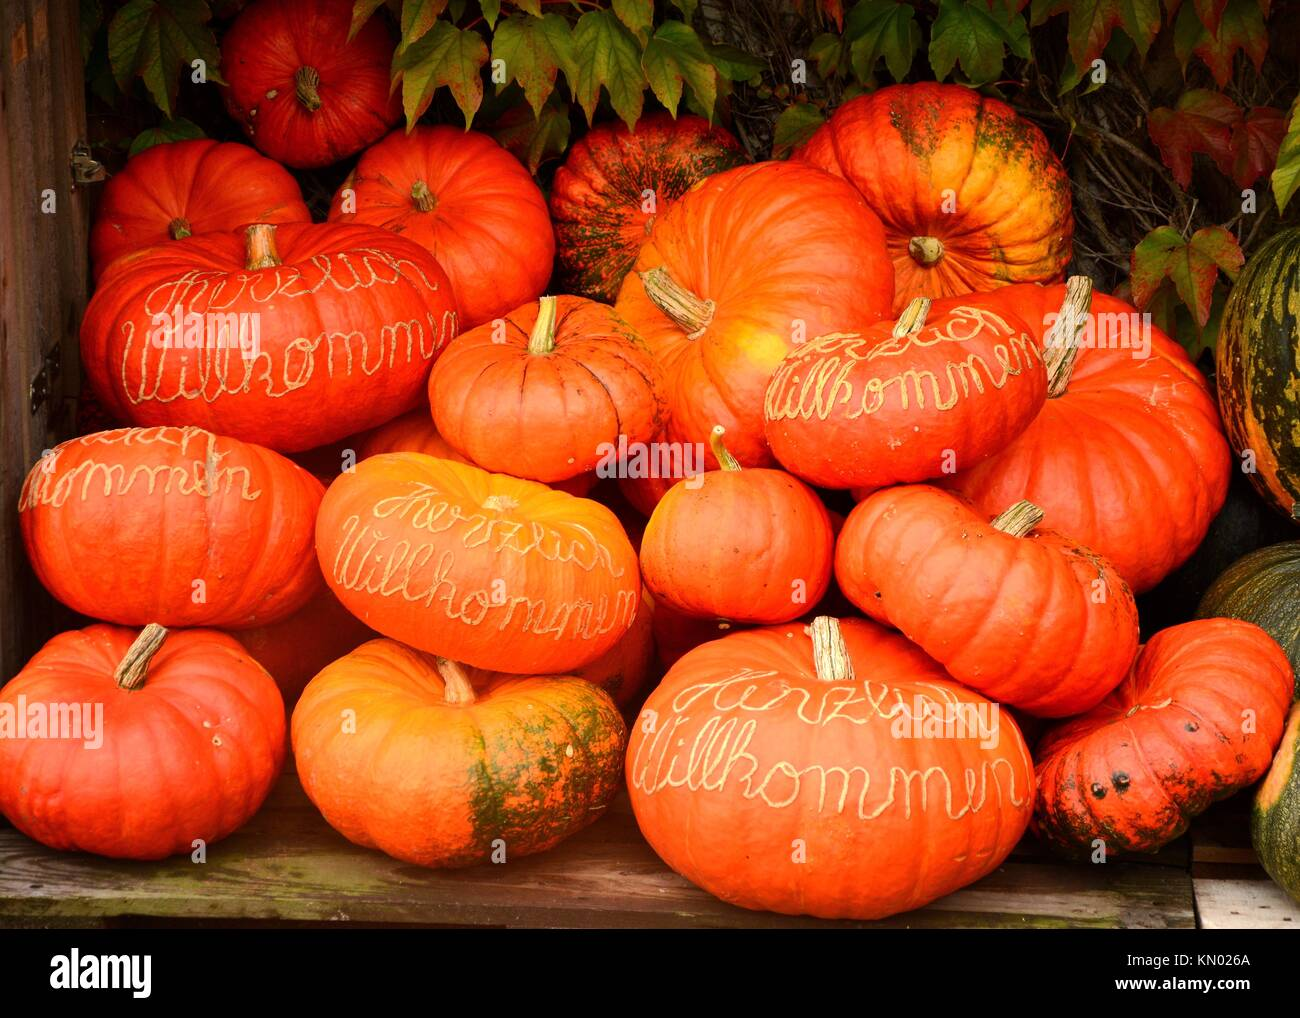 "Autumn pumkins with ""Herzlich Willkommen"" carving Stock Photo"